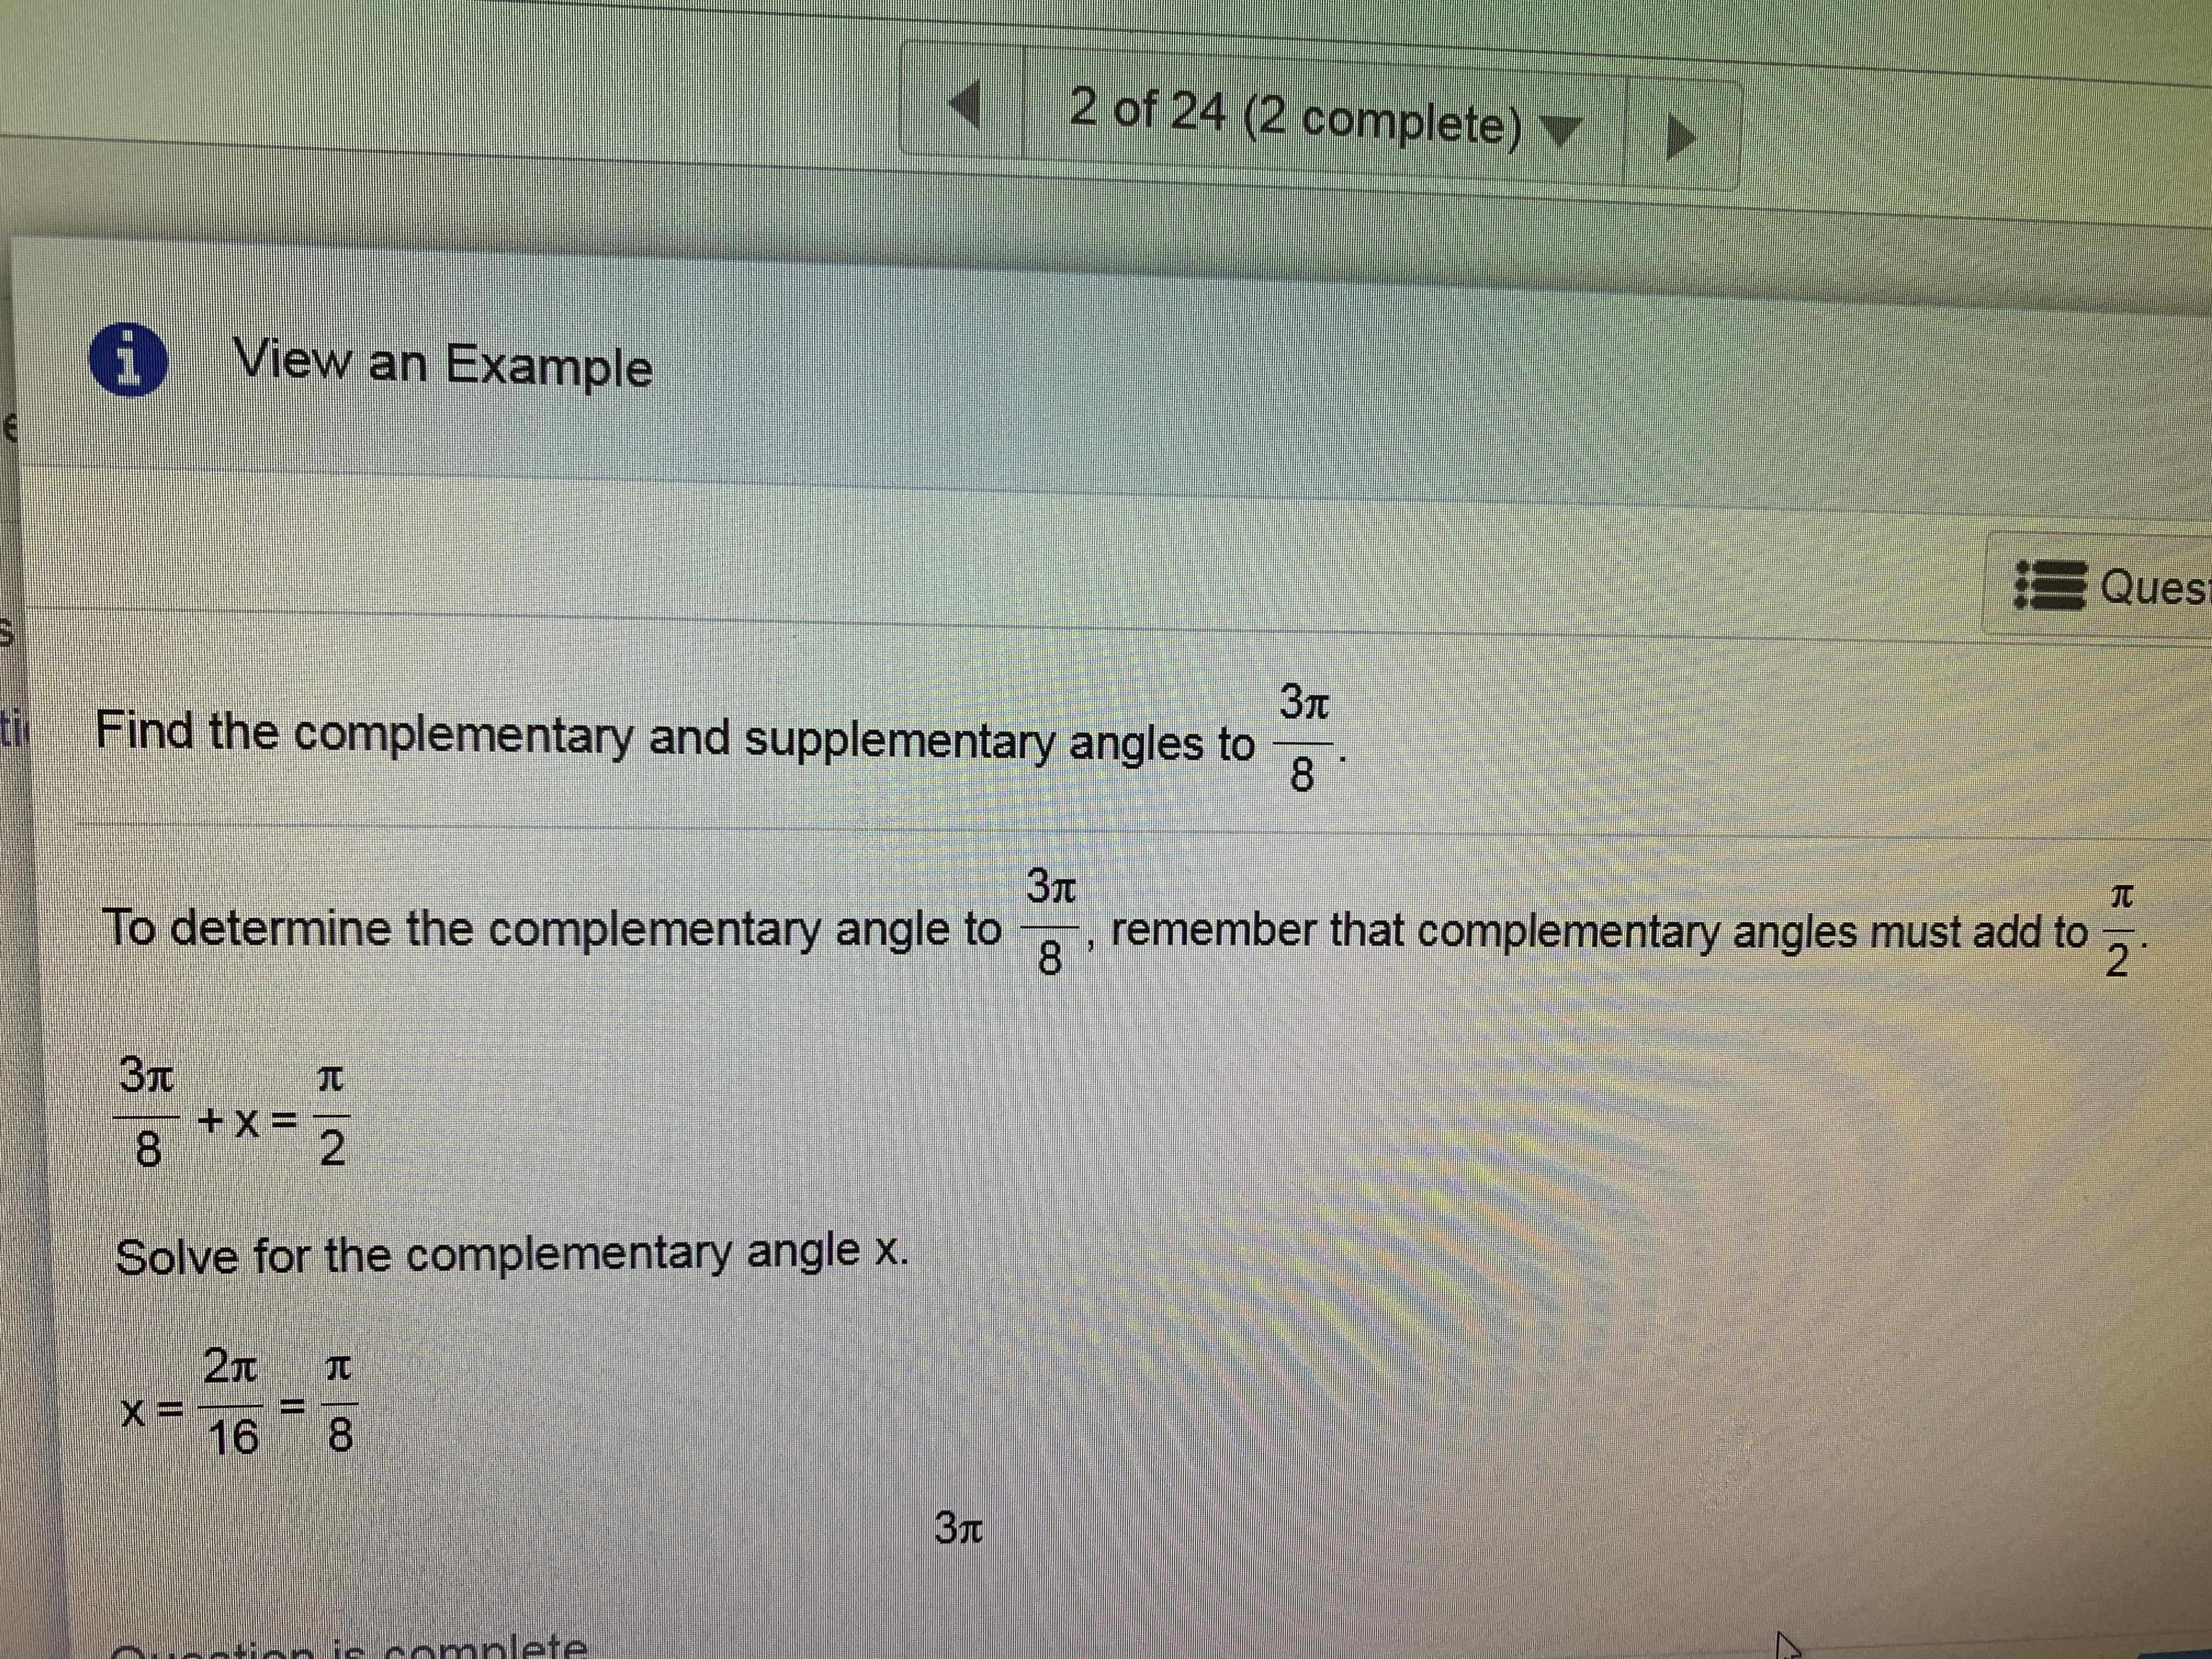 2 of 24 (2 complete) iView an Example Ques 3T tiFind the complementary and supplementary angles to 8 3T To determine the complementary angle to remember that complementary angles must add to 8 ** 2T 3T + X= 8-2 Solve for the complementary angle x. 2T JI 37t aommplete